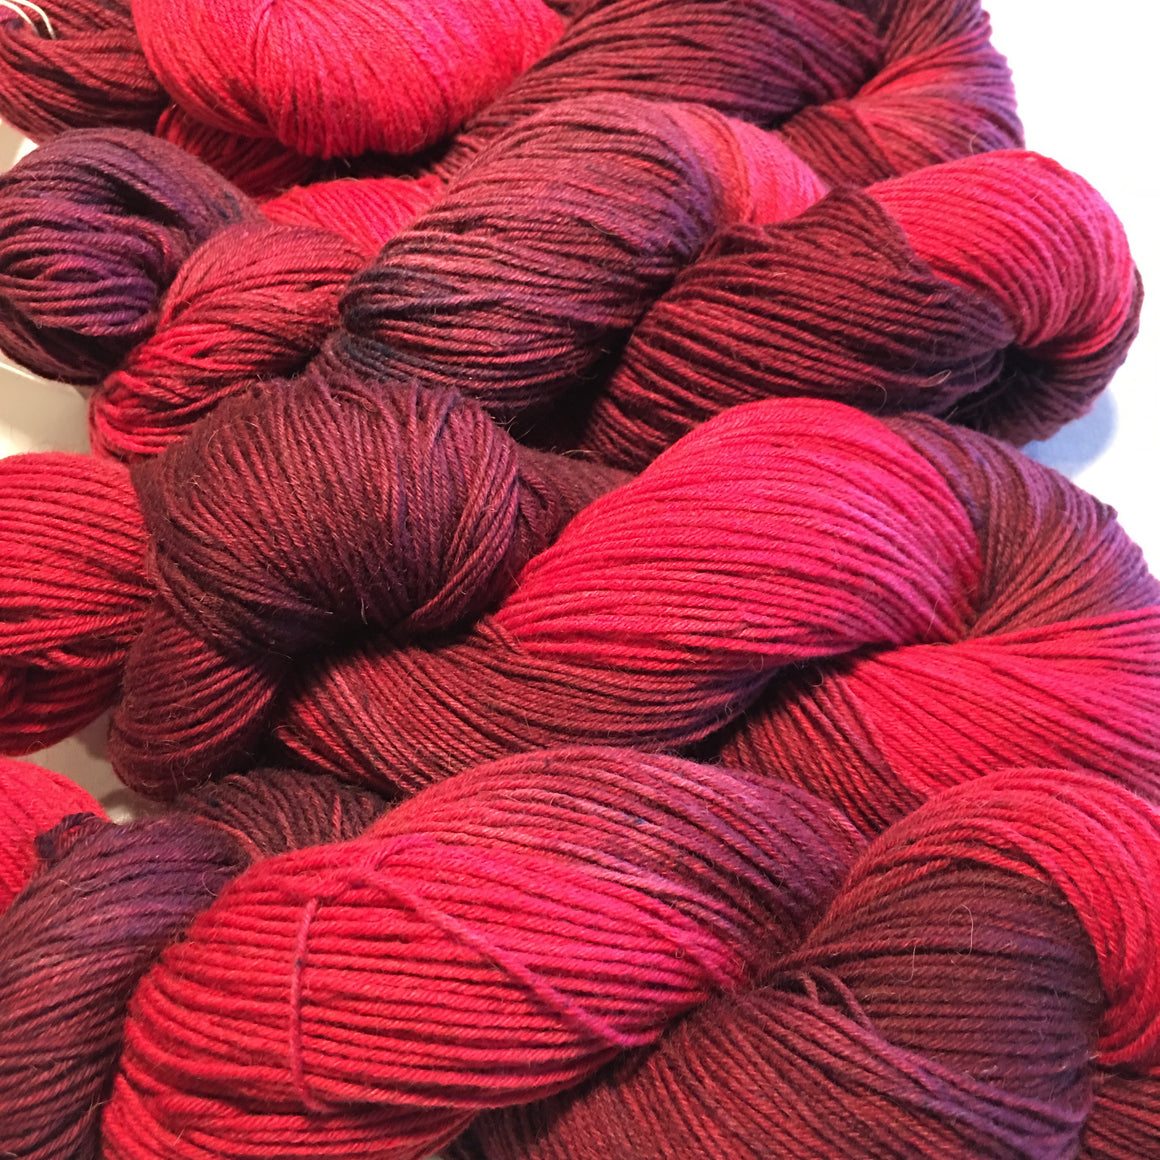 """Firestorm"" fingering weight bison yarn is multiple tones of reds and pinks"